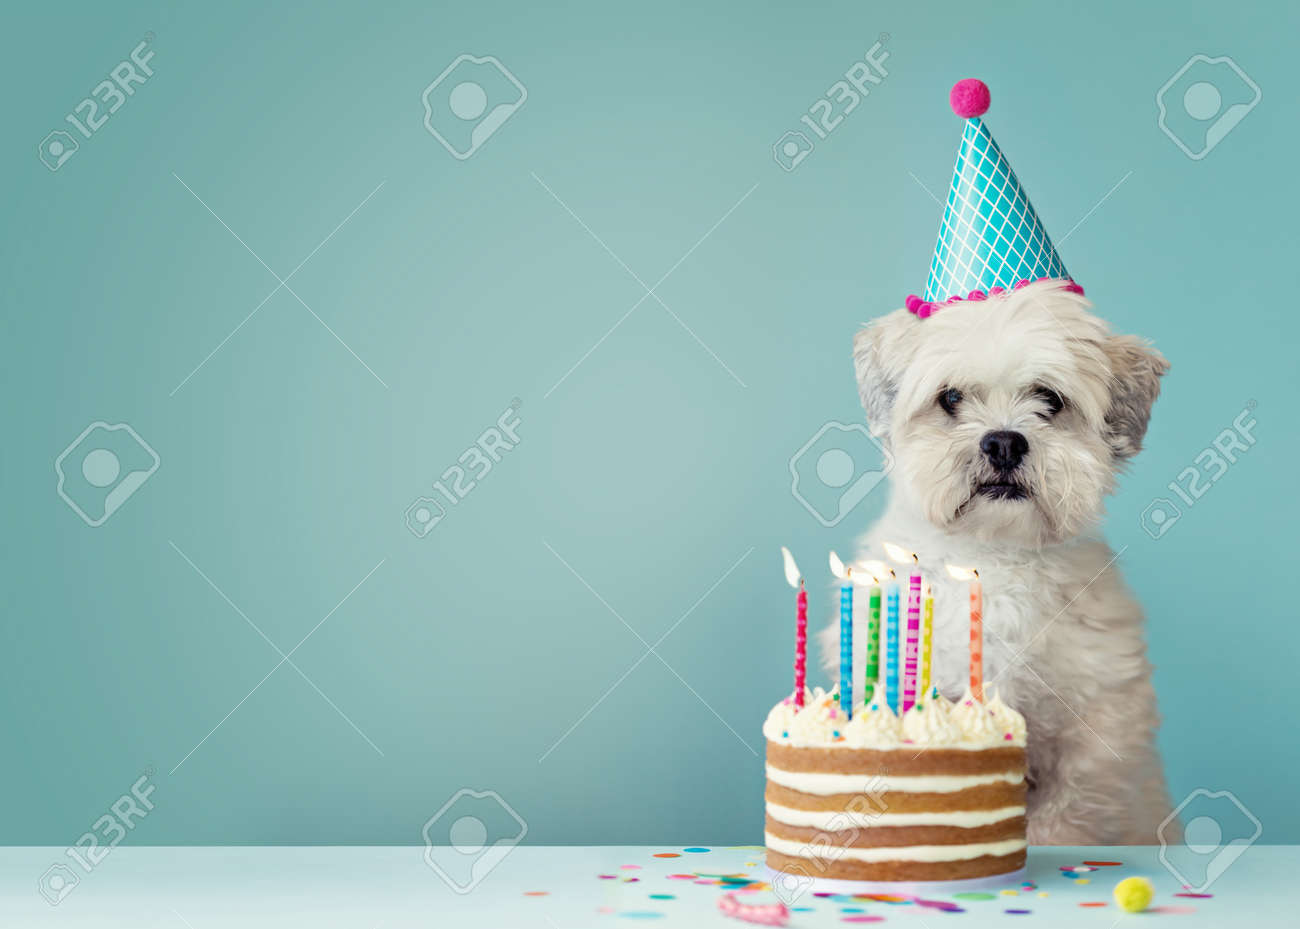 Cute dog with party hat and birthday cake - 85507154